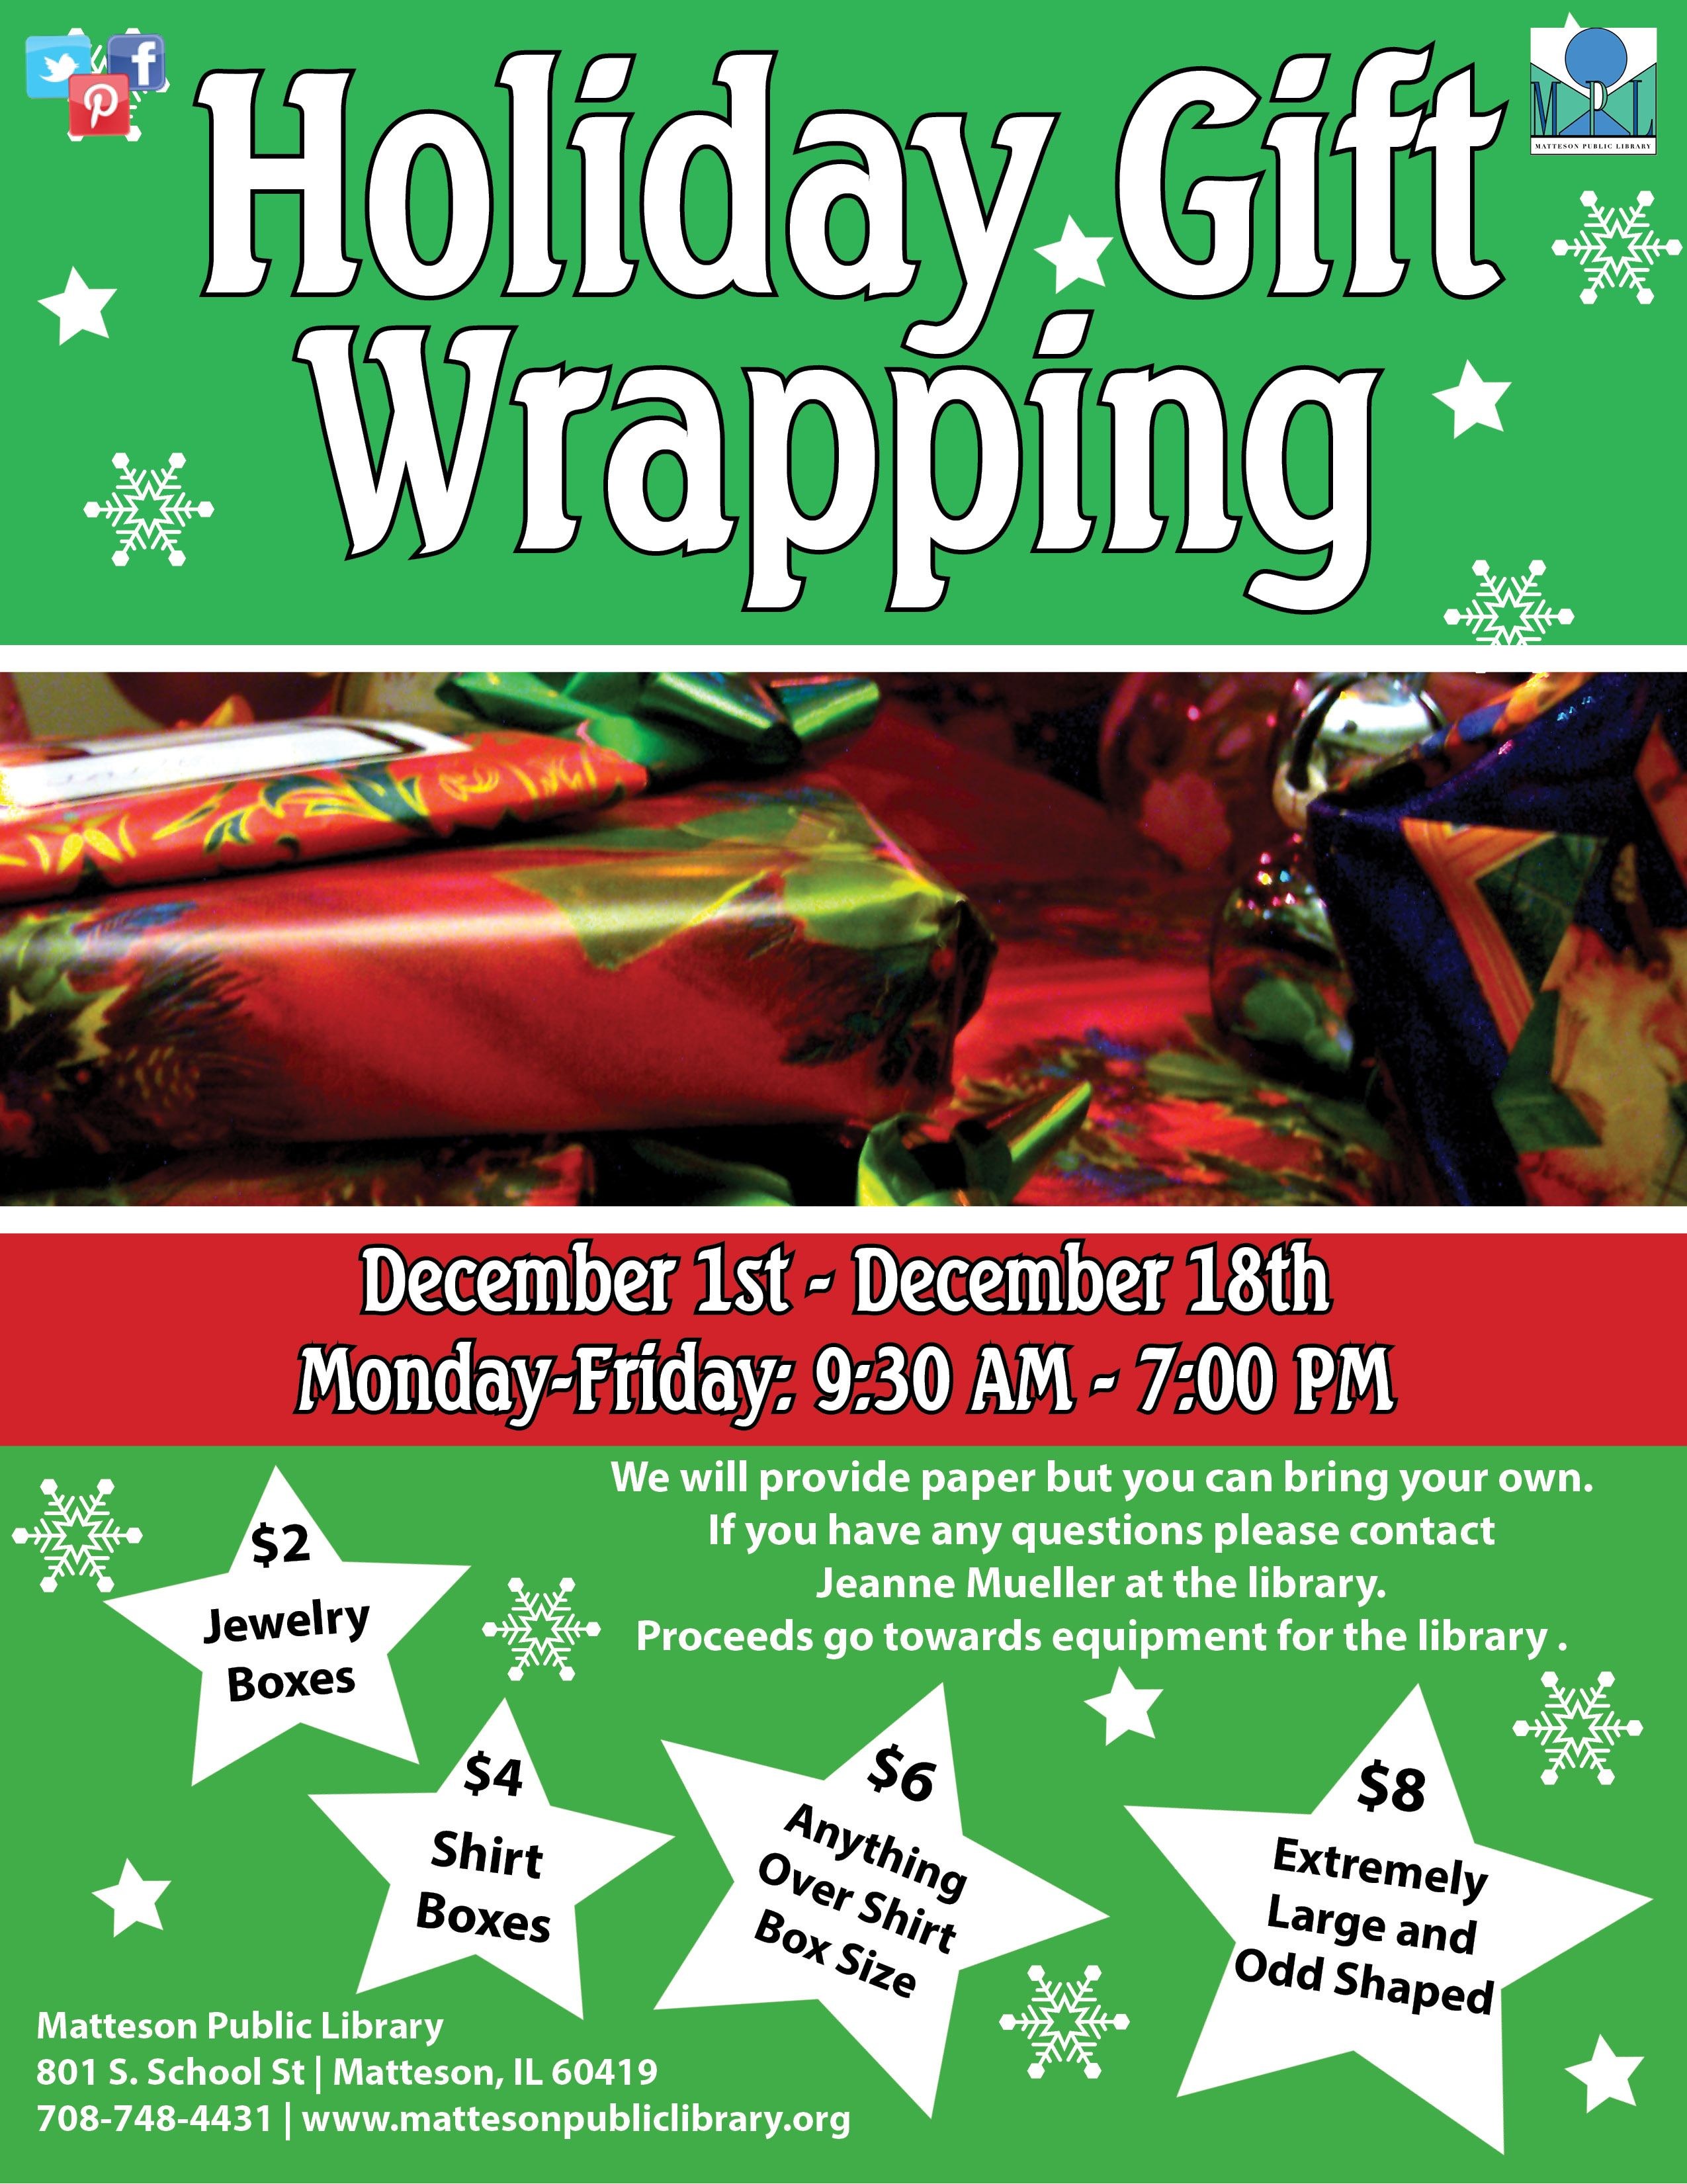 The library is having a Holiday Gift Wrapping Event from ...